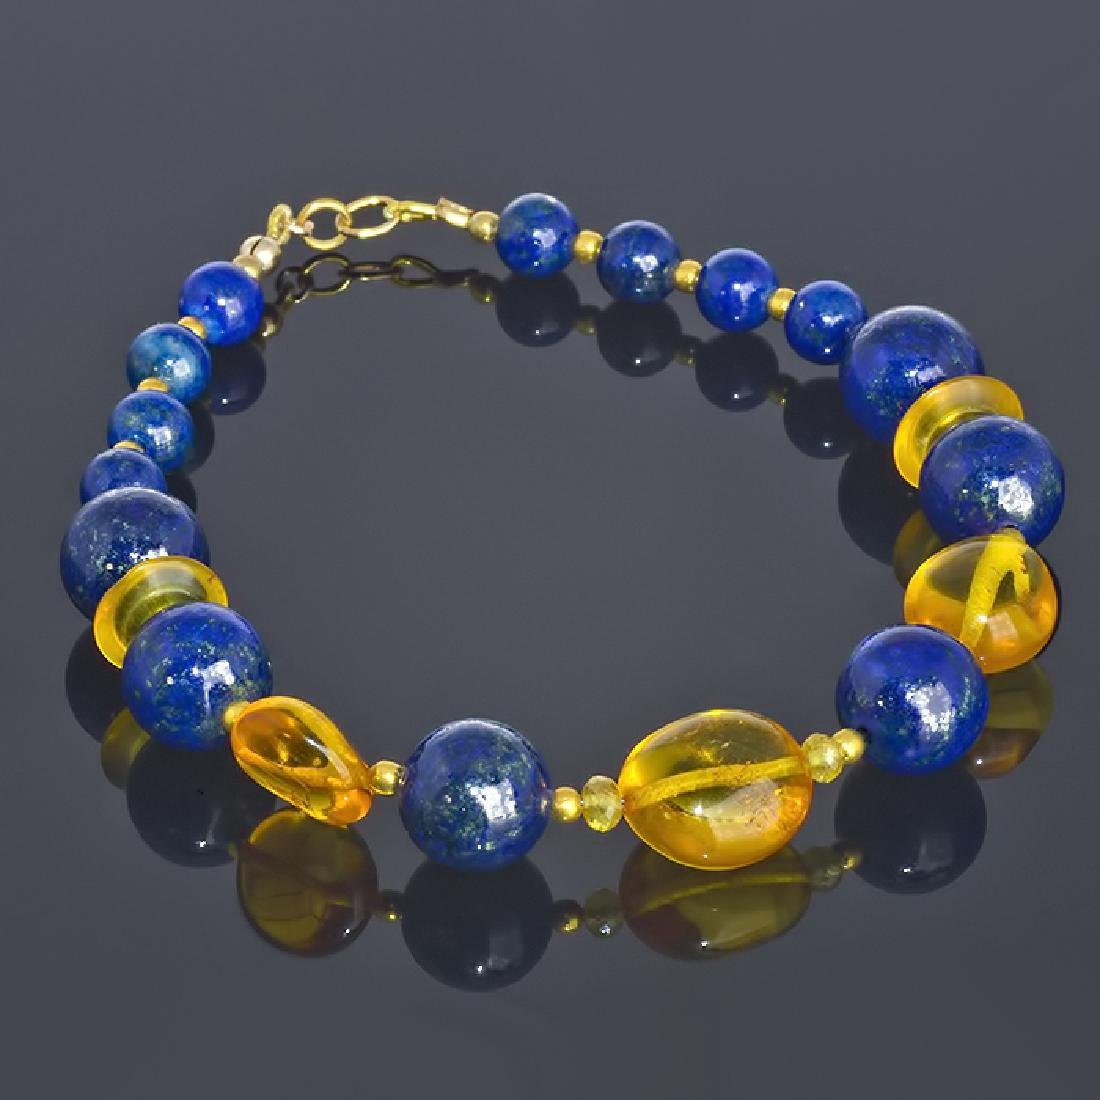 Lapis lazuli and Amber bracelet with Sapphires